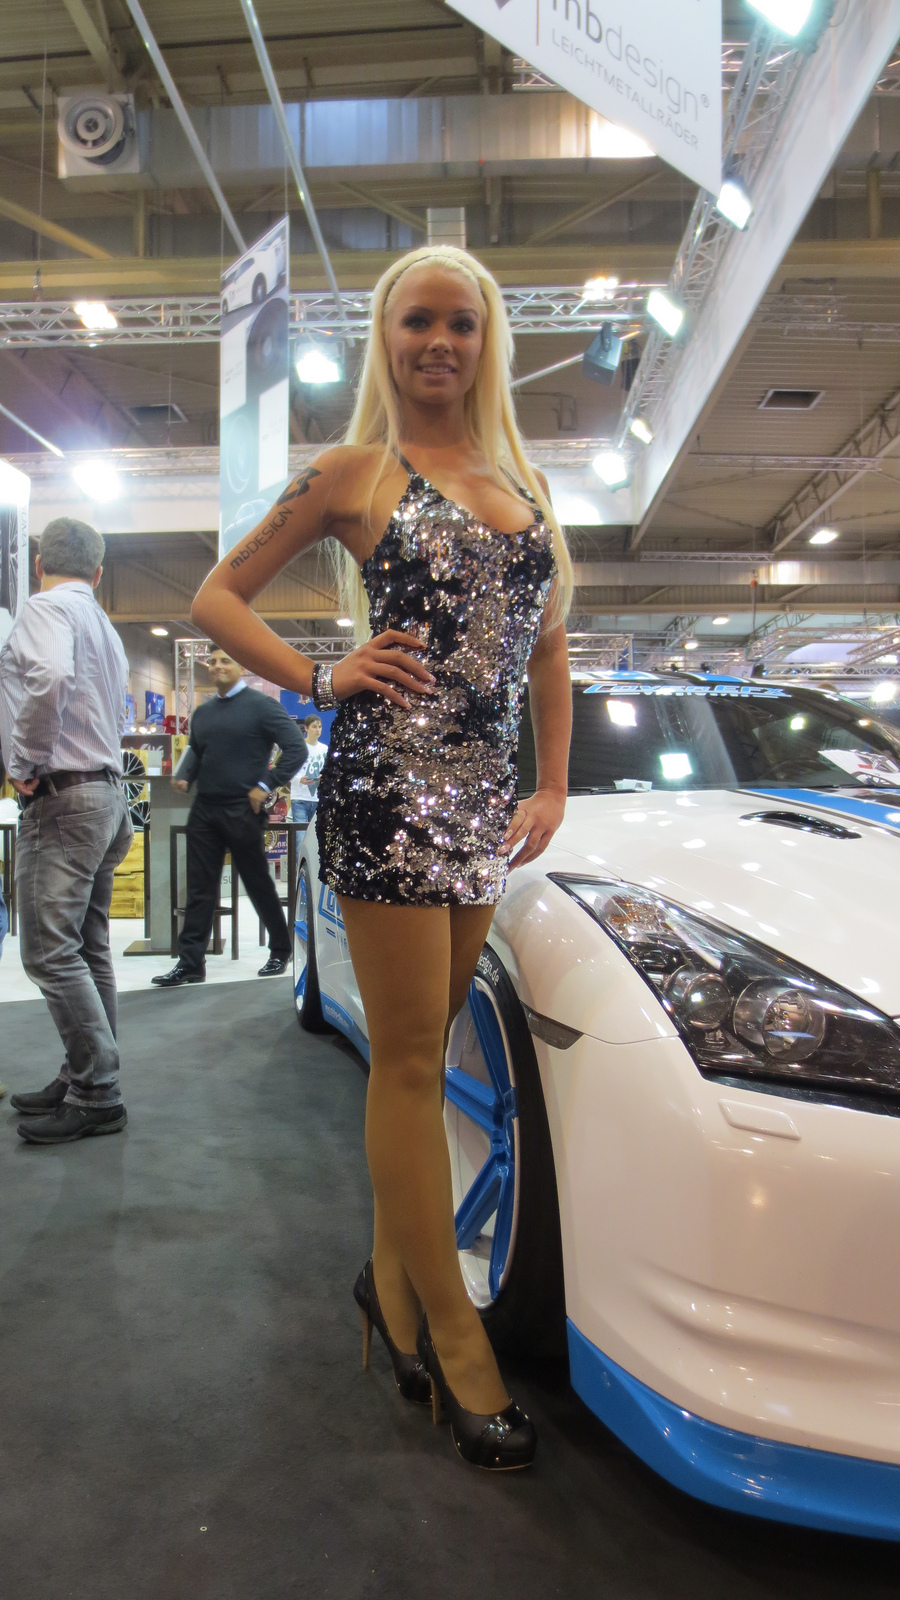 Auto Kia Girls At Essen Motor Show 2012 - Autoevolution